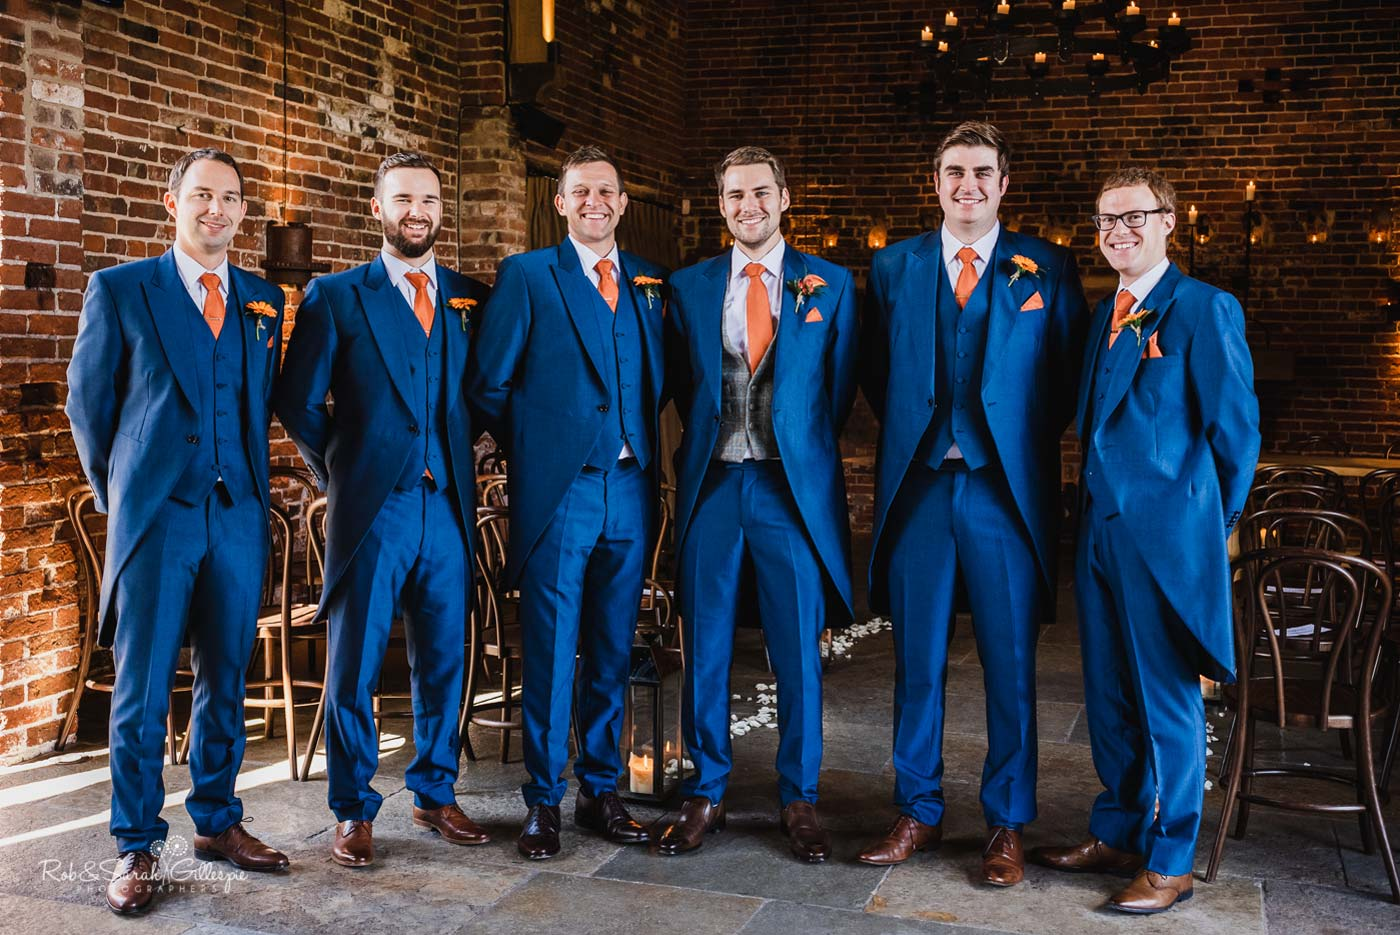 Group photo of groom and ushers at Hazel Gap Barn